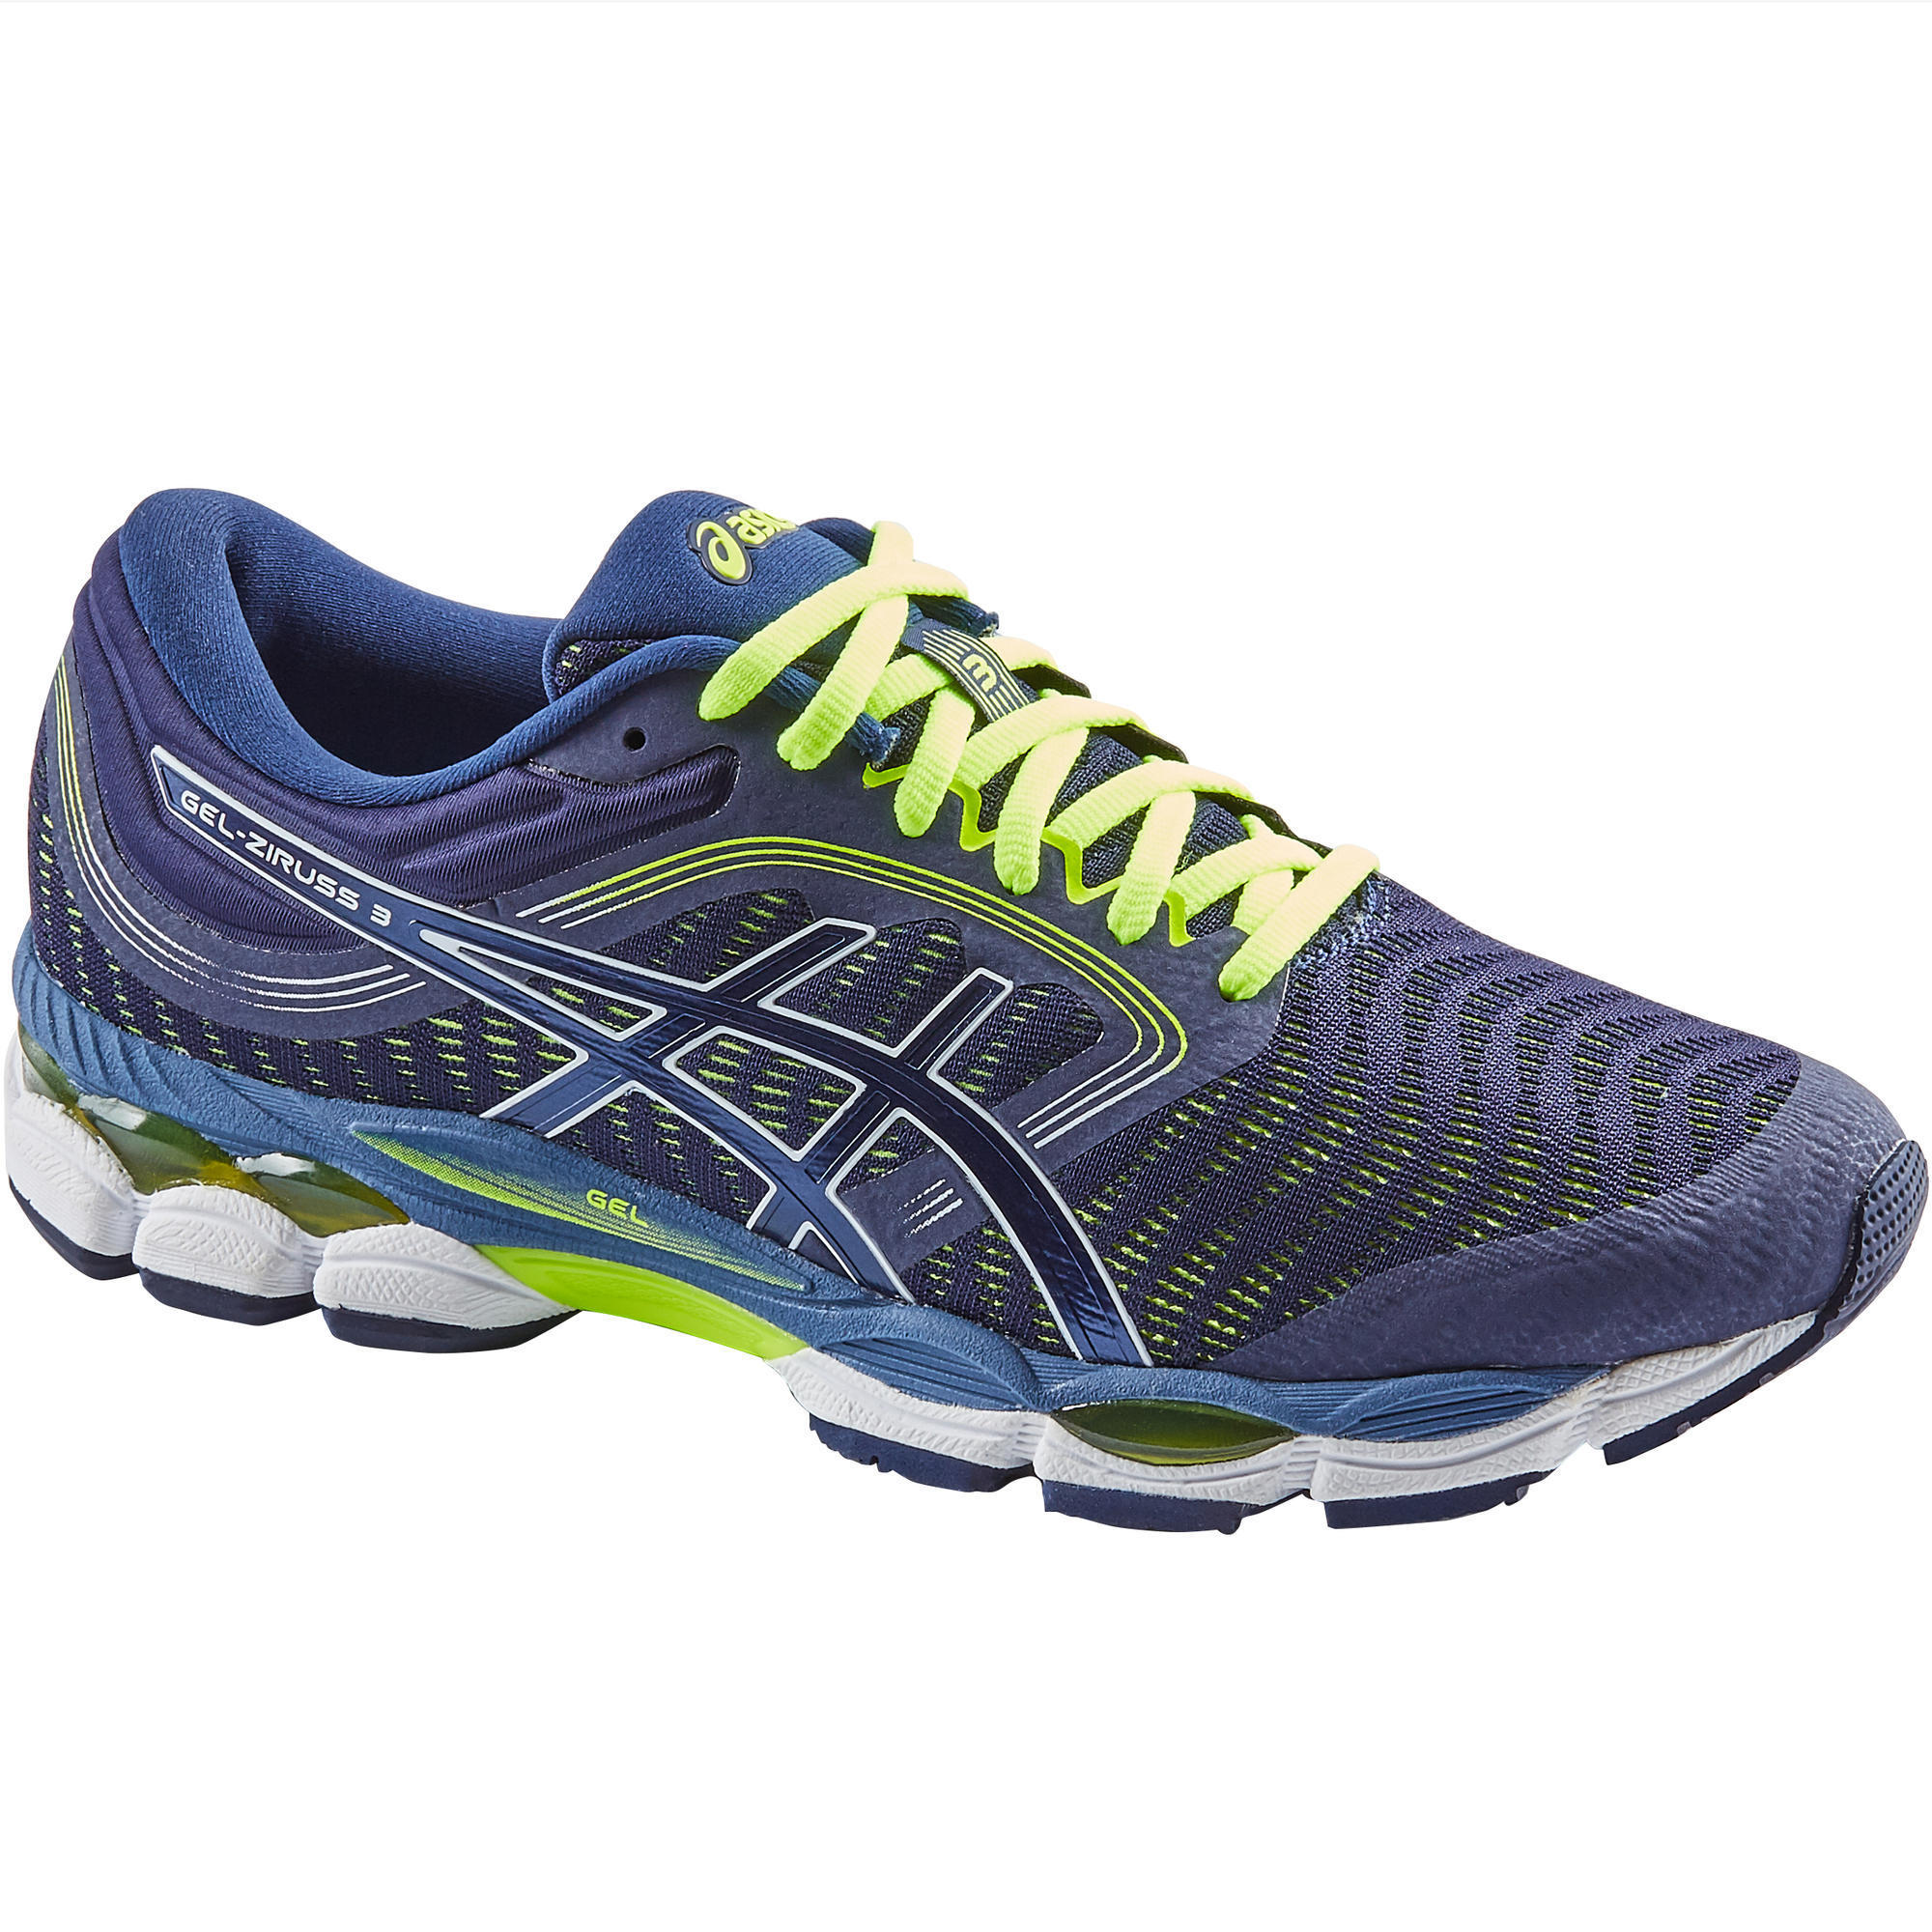 Zapatillas Asics de running | Decathlon